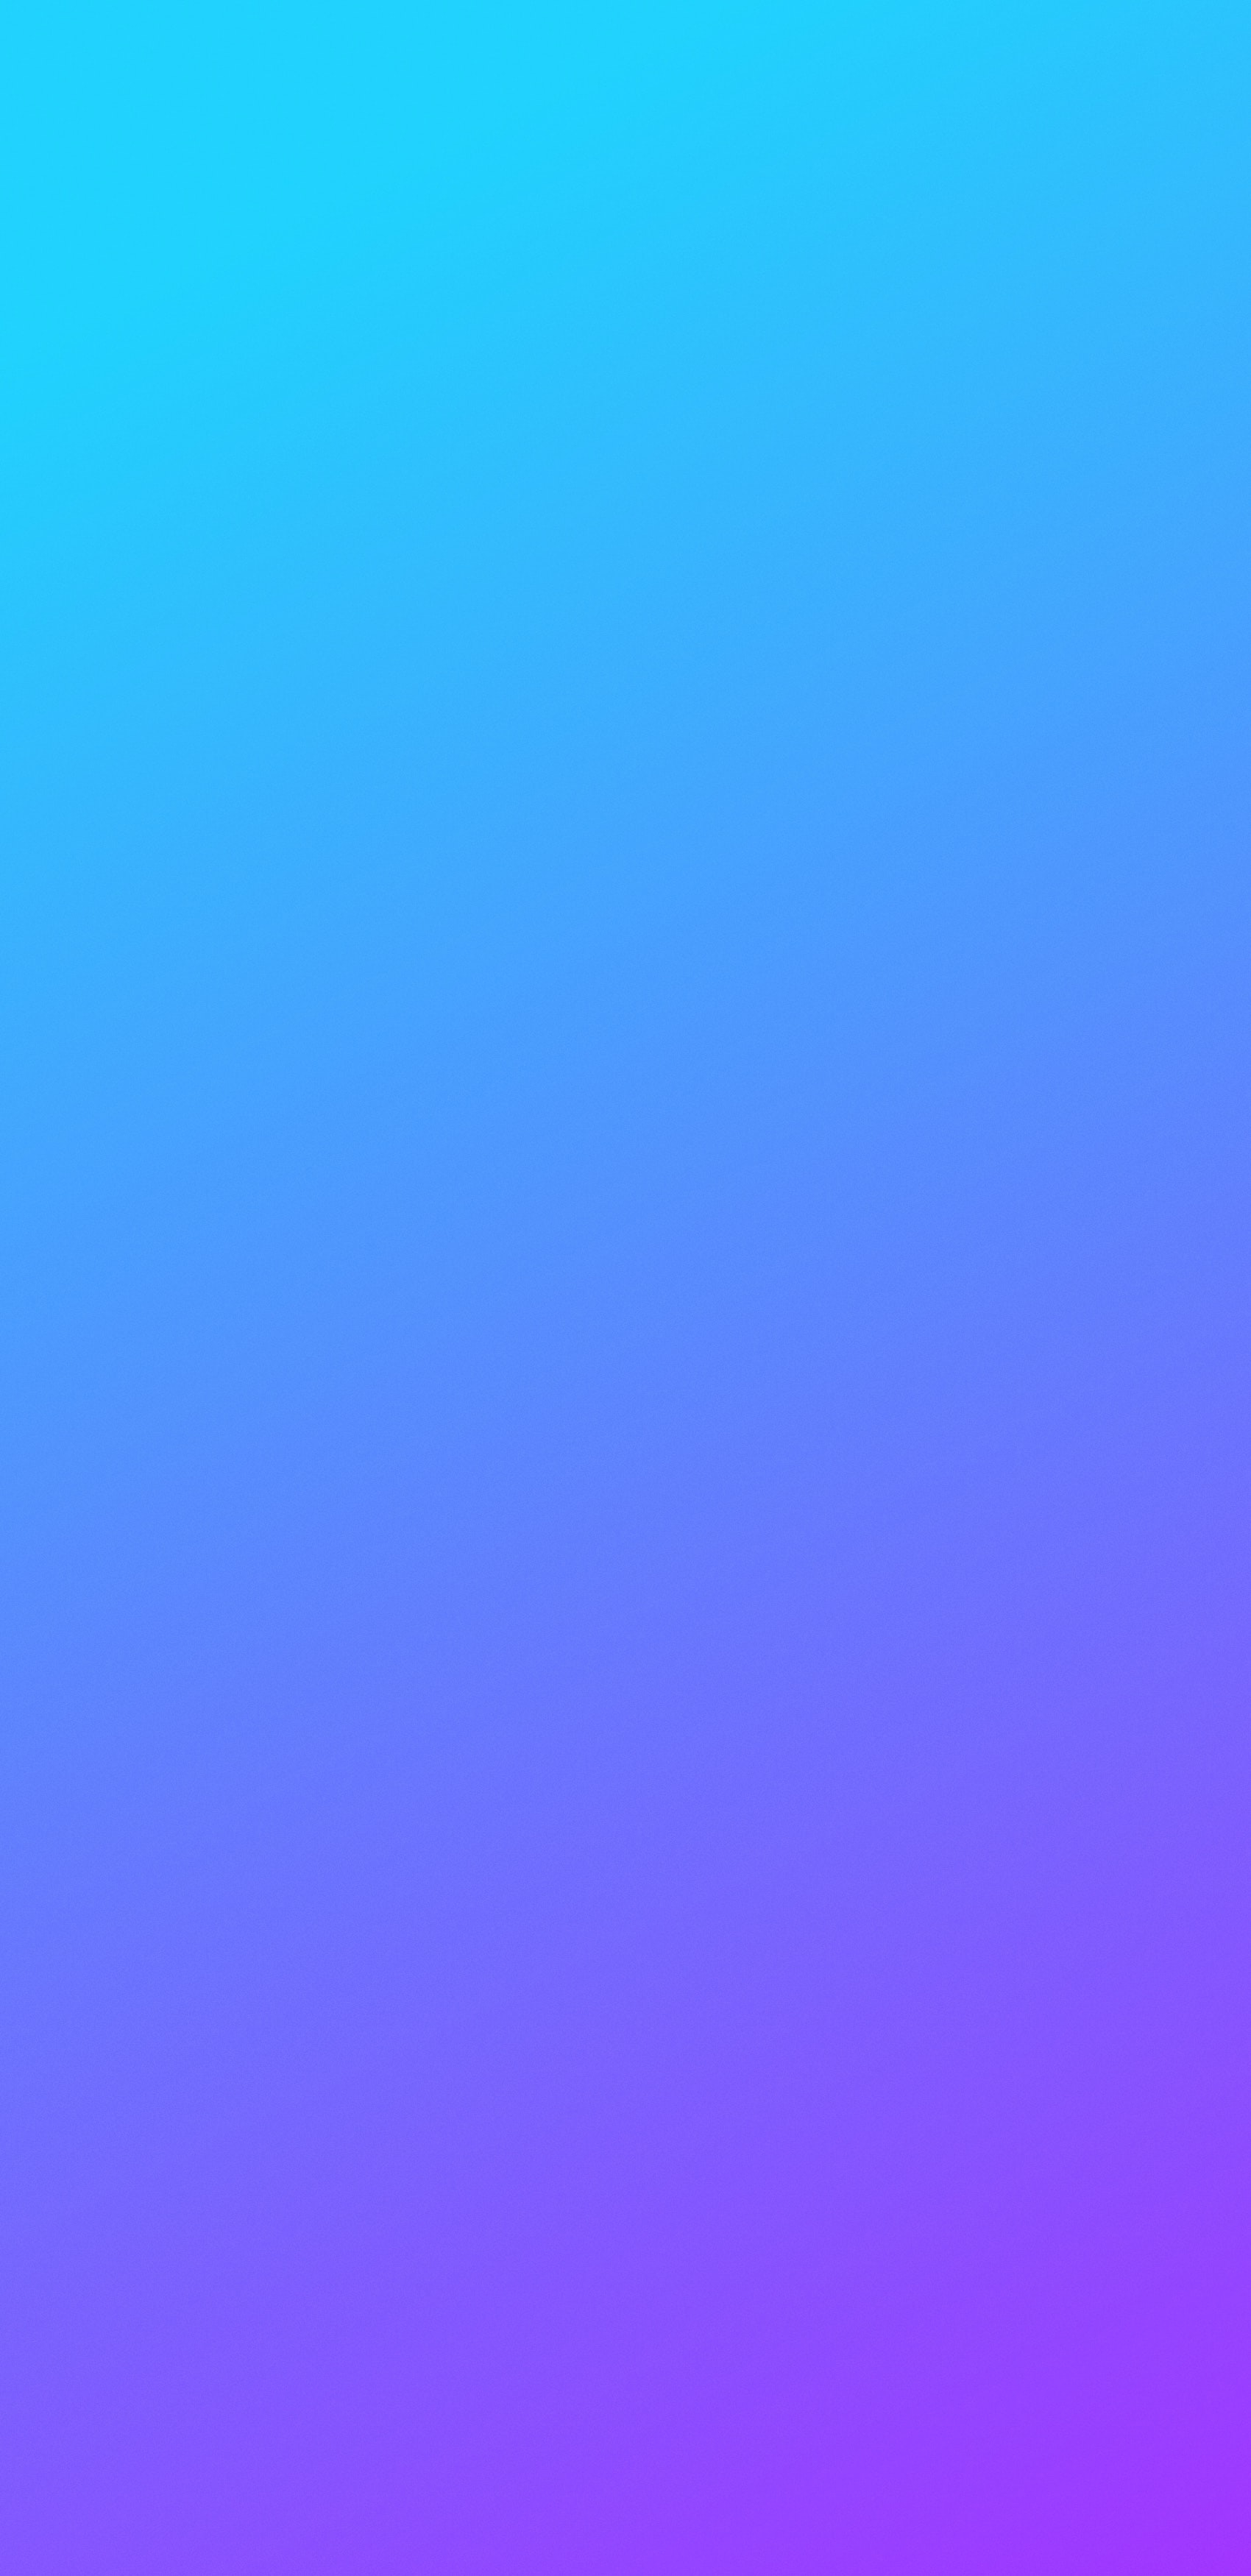 900 Gradient Background Images Download Hd Backgrounds On